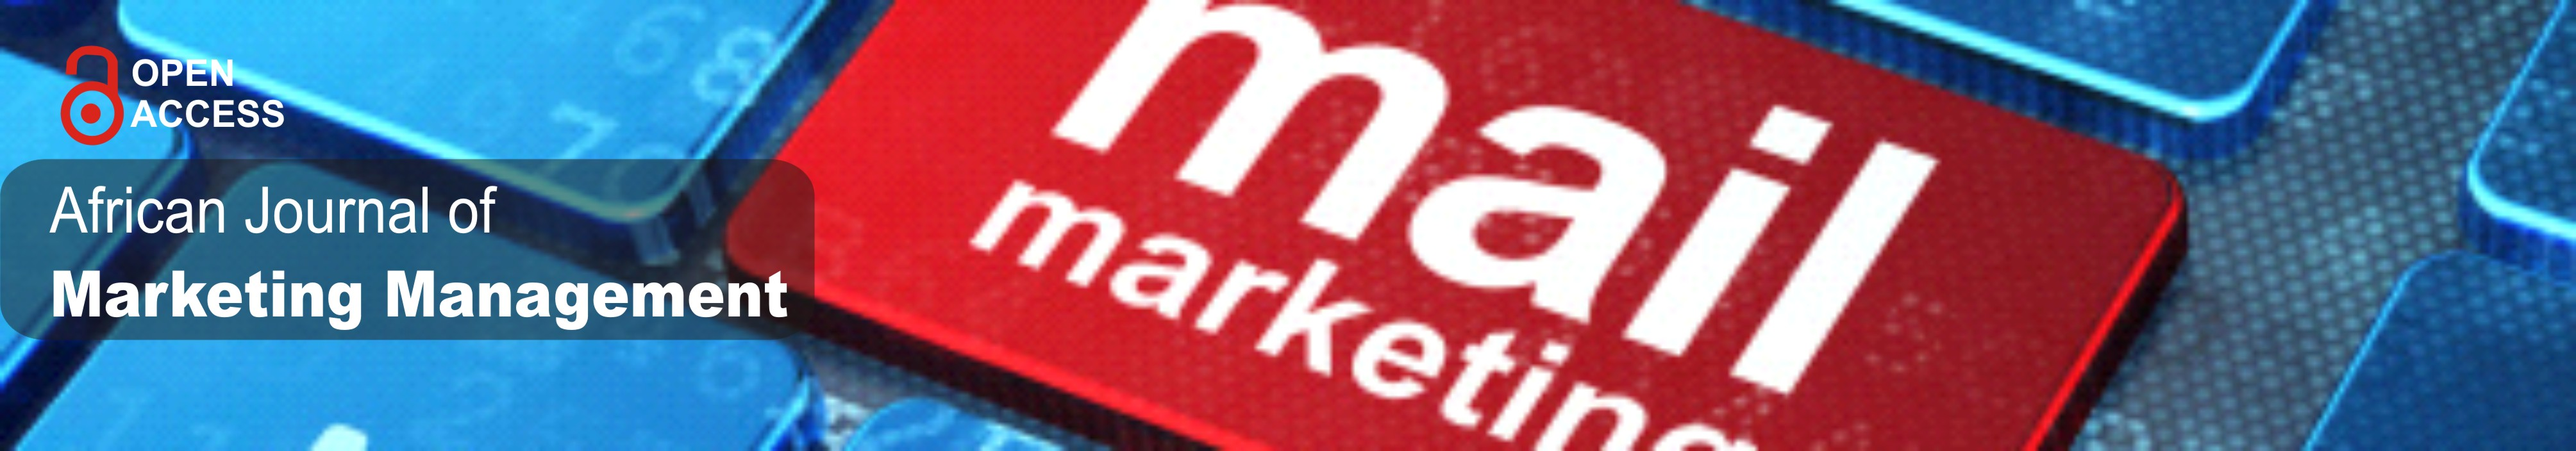 African Journal of Marketing Management